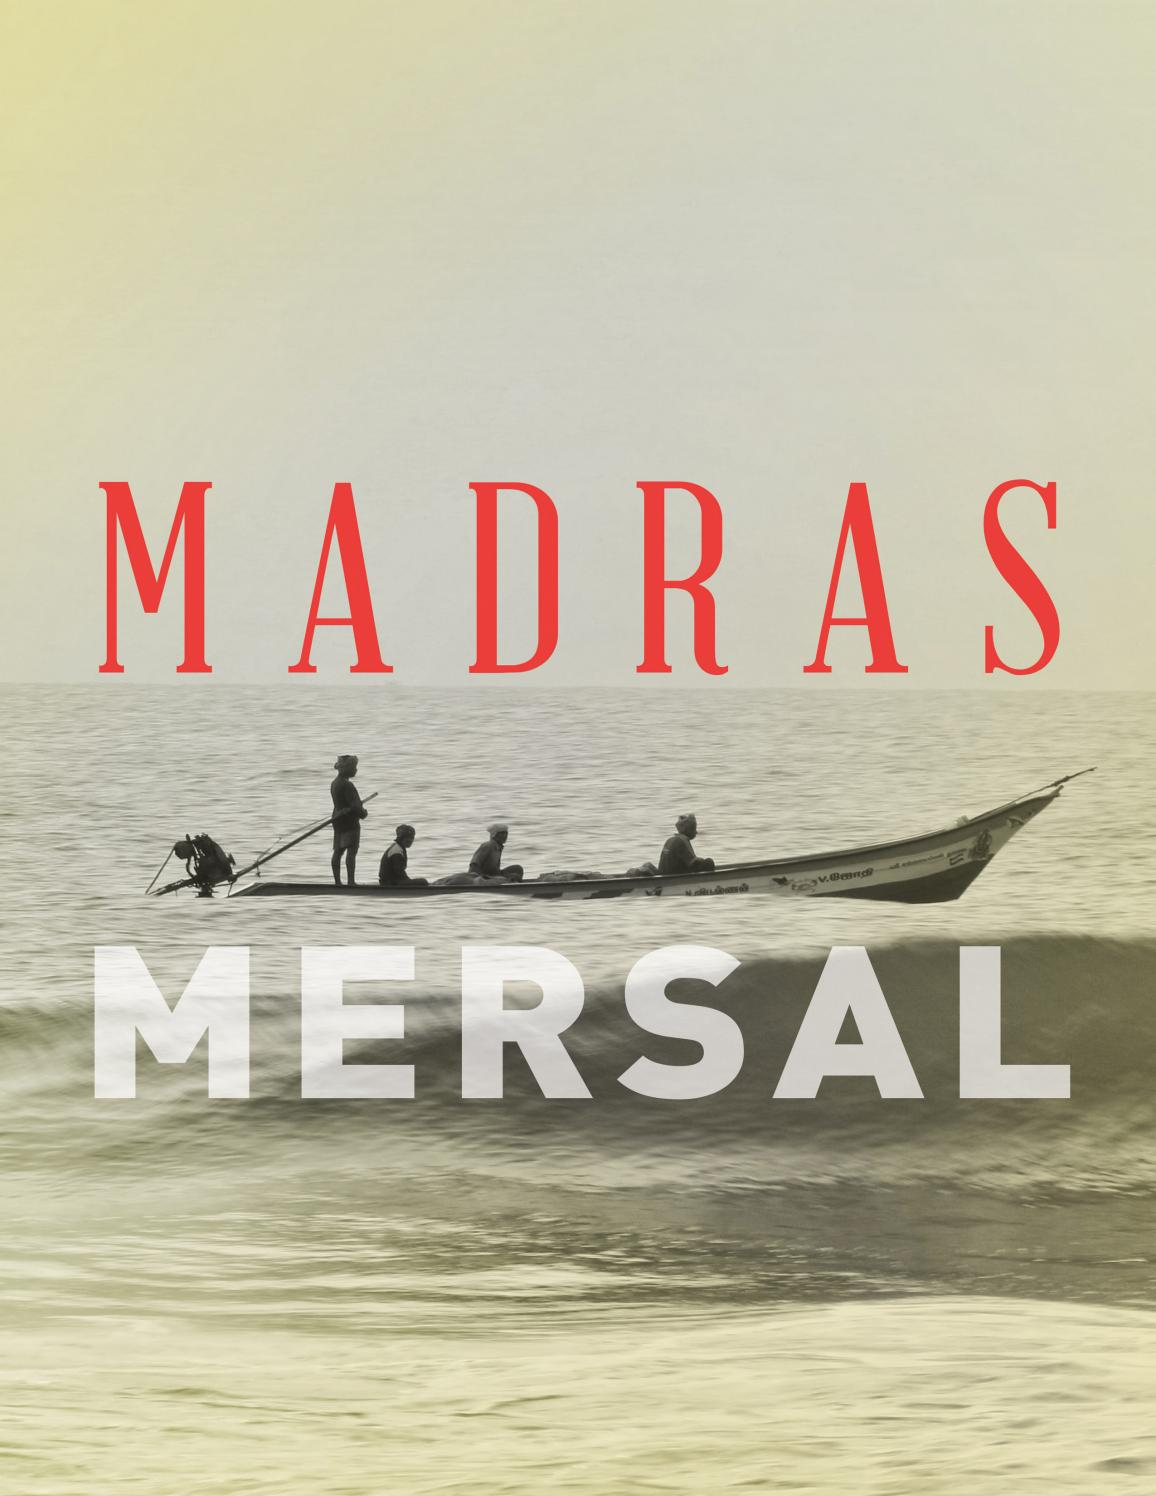 Madras Mersal By Divashi Krish Issuu